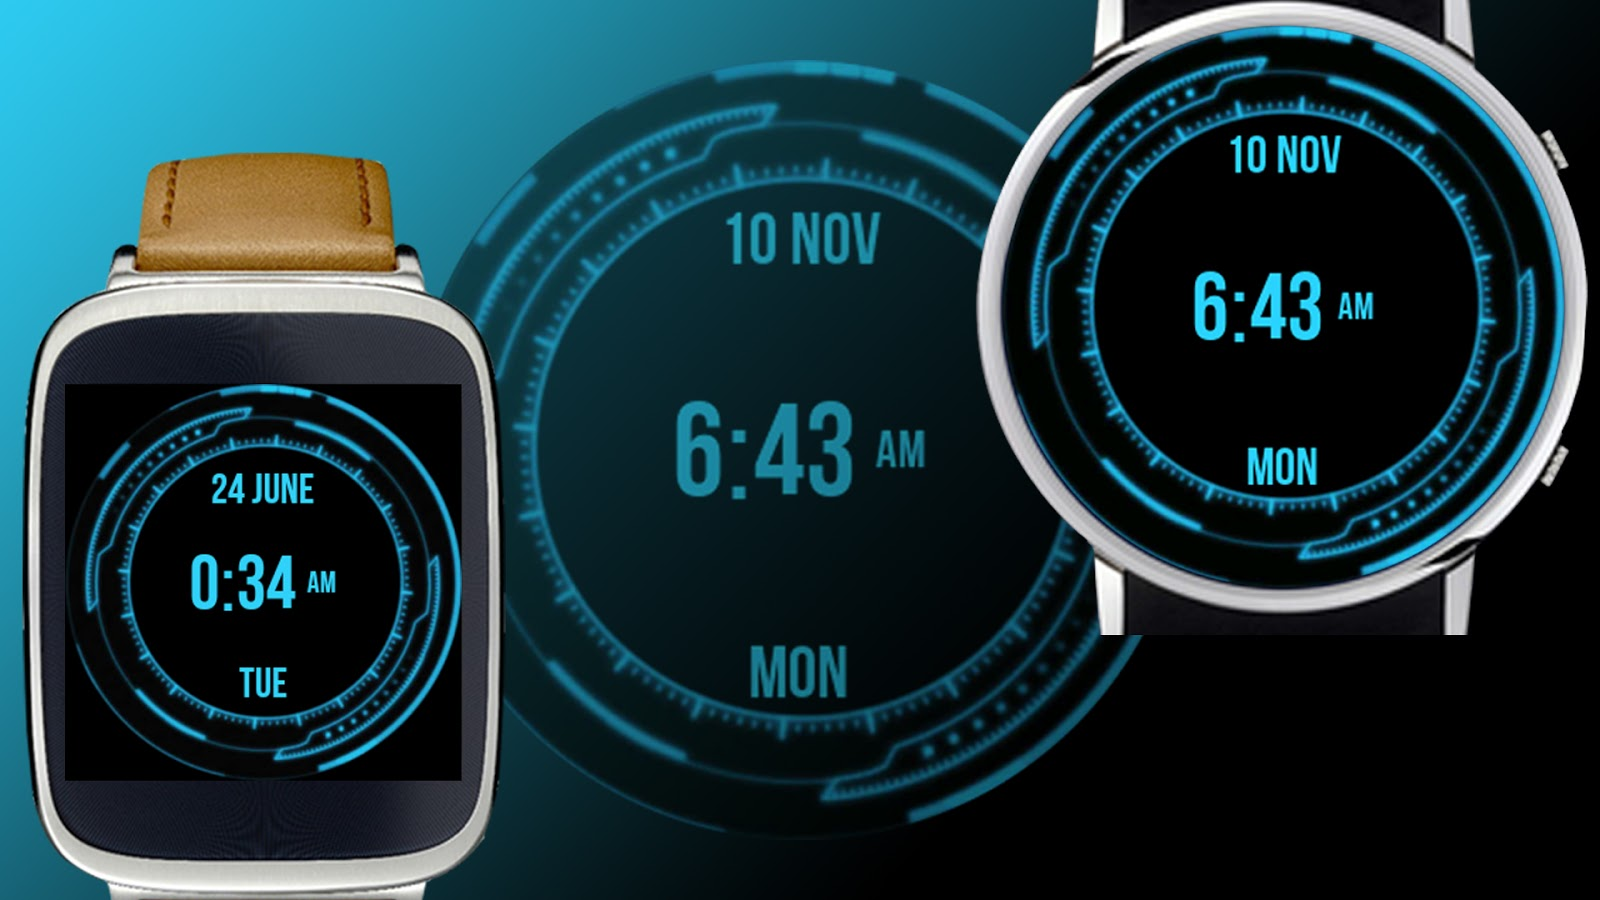 Designer android wear watchface - The Watch Face Has A Futuristic Design And Cool Layout It Has Date Month And Day Display On The Watch Face Itself Here Are Some Of The Features Of Wear